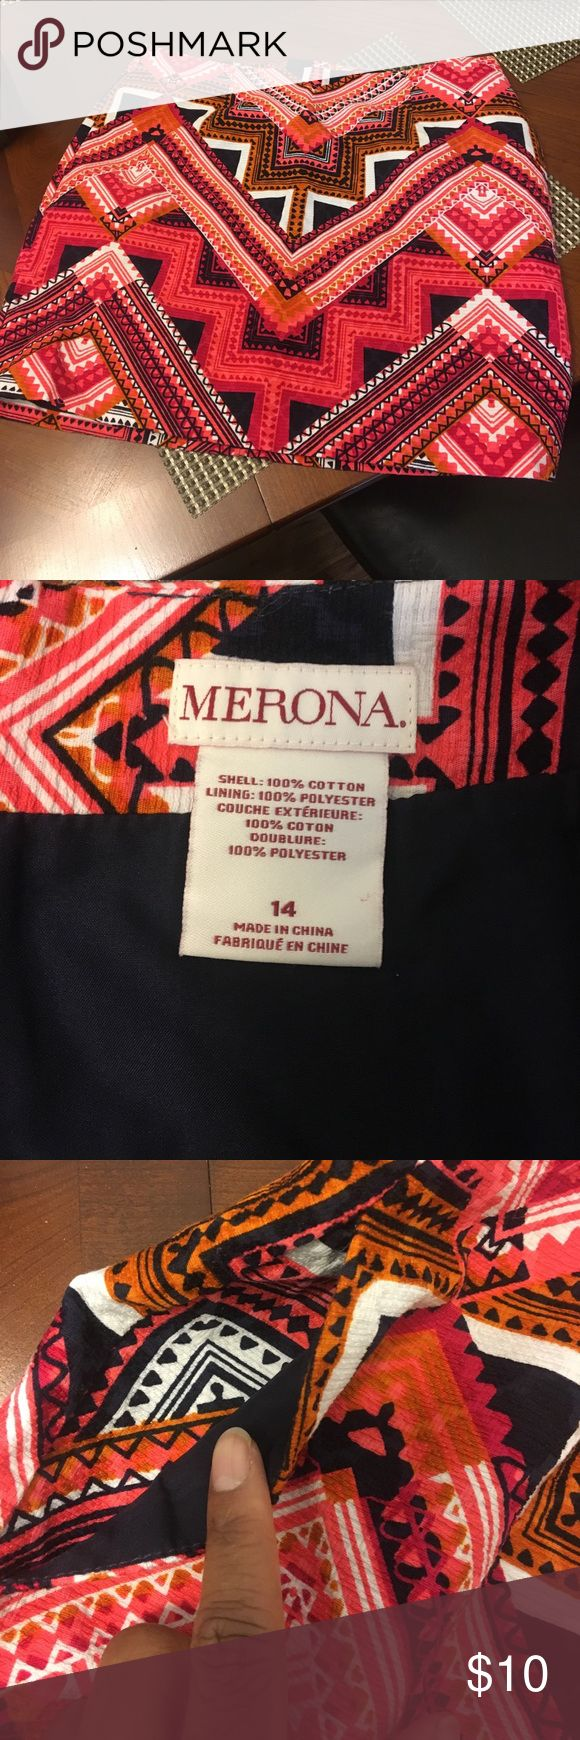 Merona tribal print skirt Beautiful bold skirt! Cute to dress up or down. Causally wear with pumps or sneakers! You'll get tons of compliments! Merona Skirts Mini